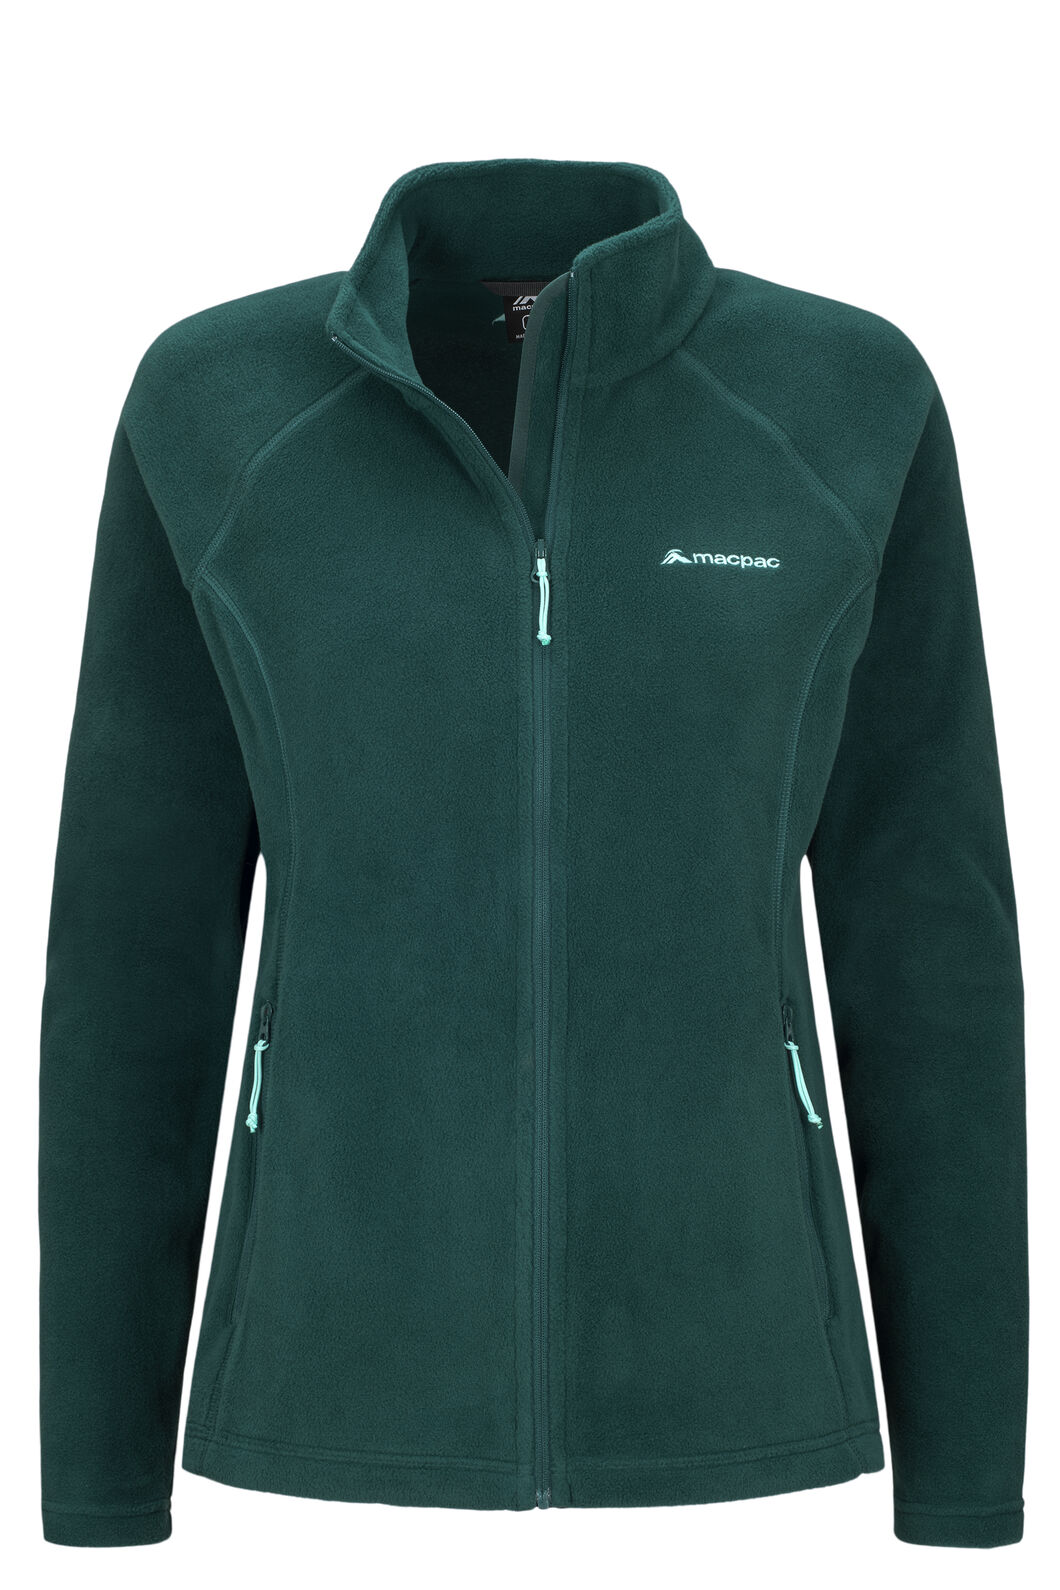 Macpac Tui Polartec® Micro Fleece® Jacket — Women's, Reflecting Pond, hi-res